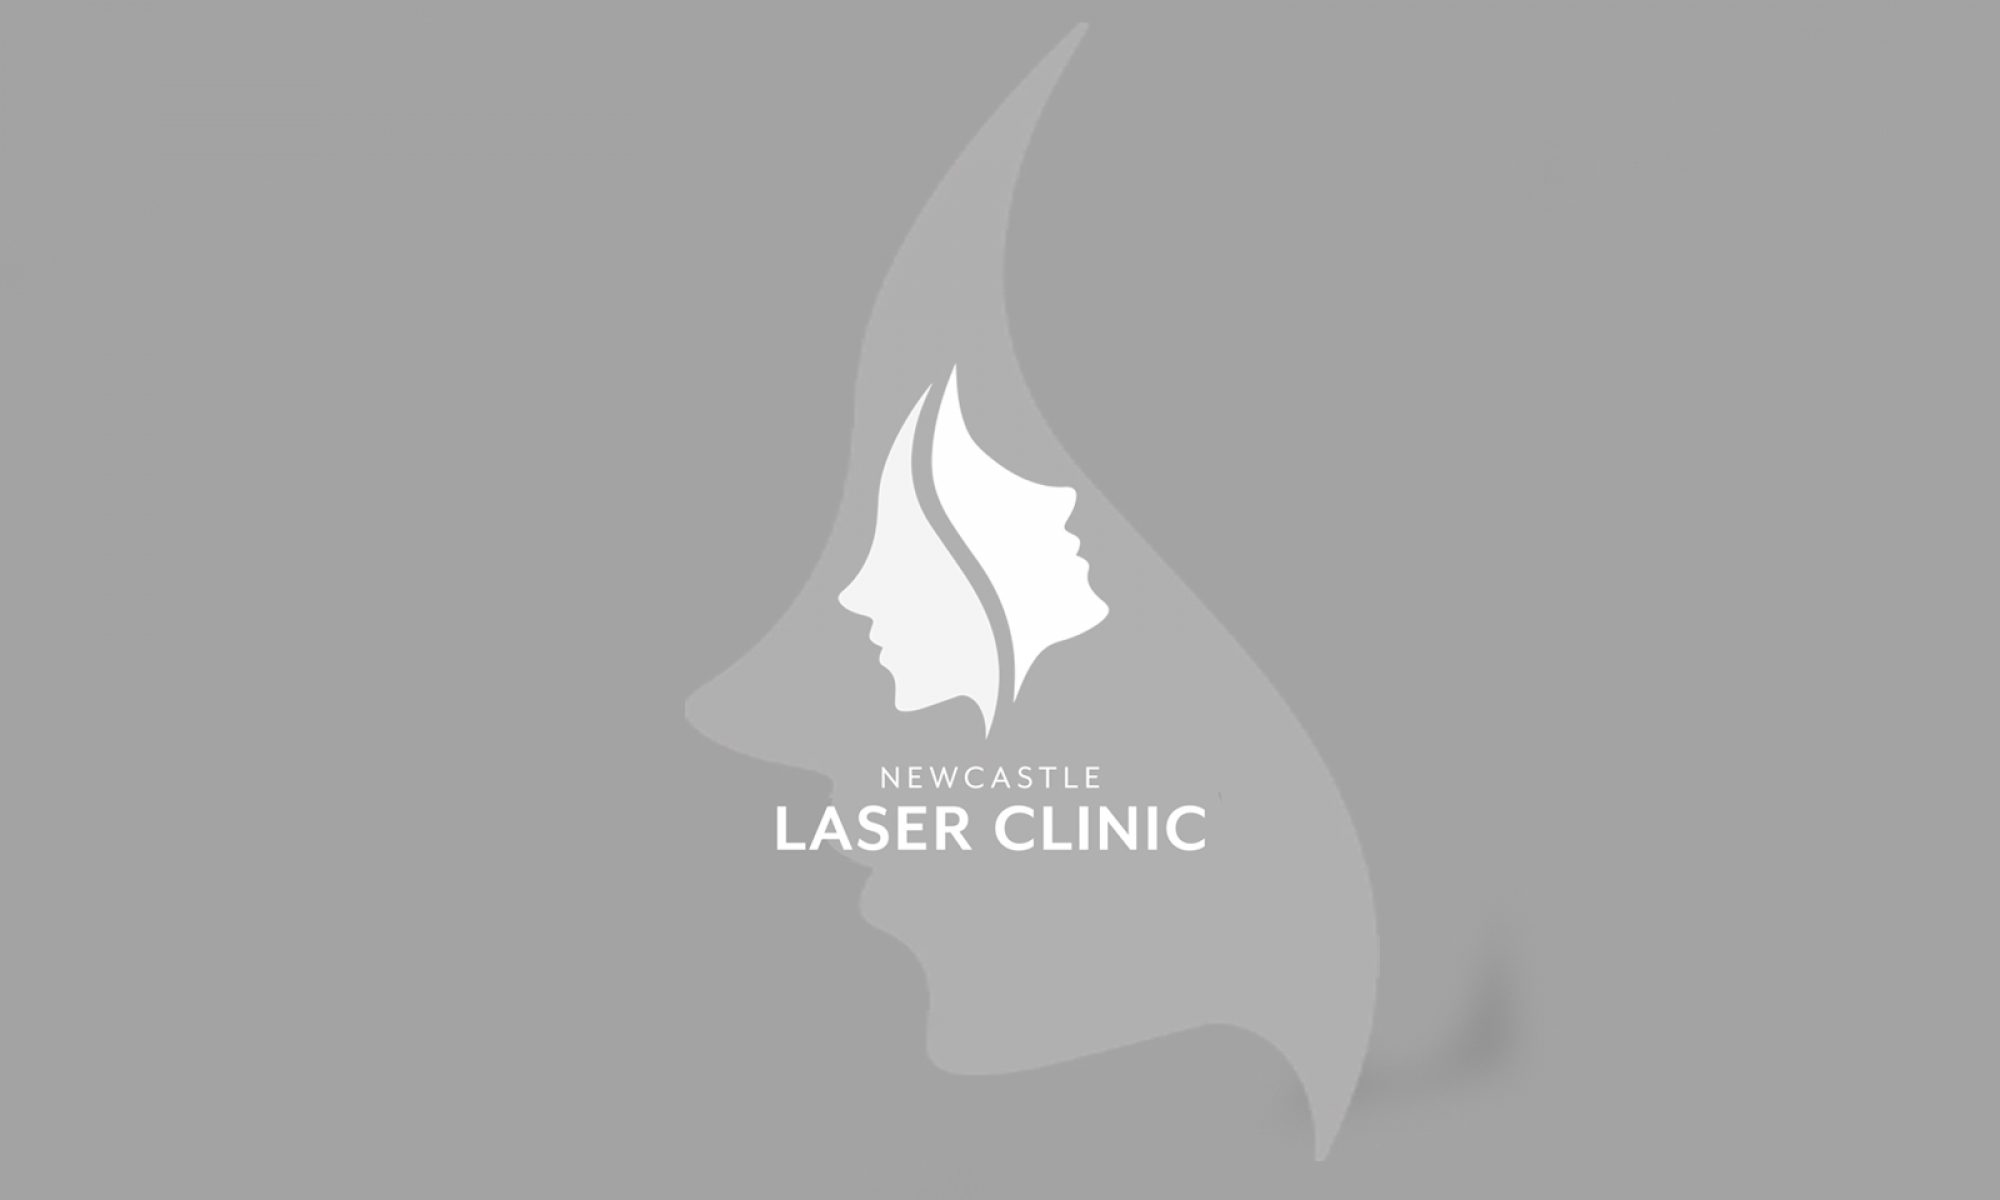 Newcastle Laser Clinic